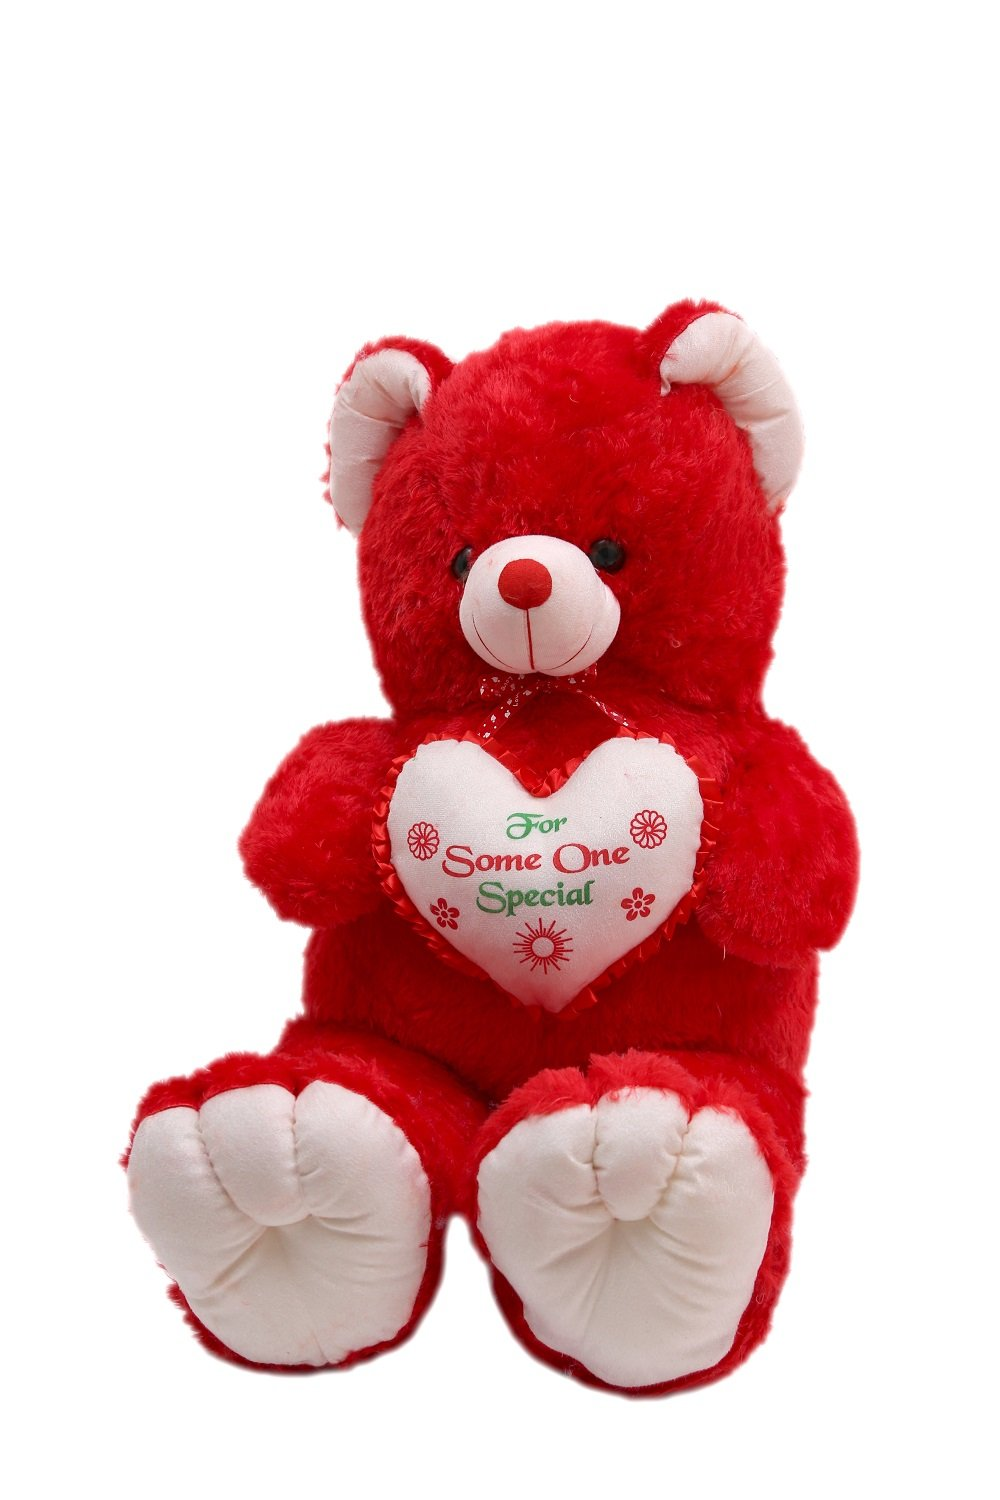 ToynJoy Big Jumbo Red 5 feet Teddy bear